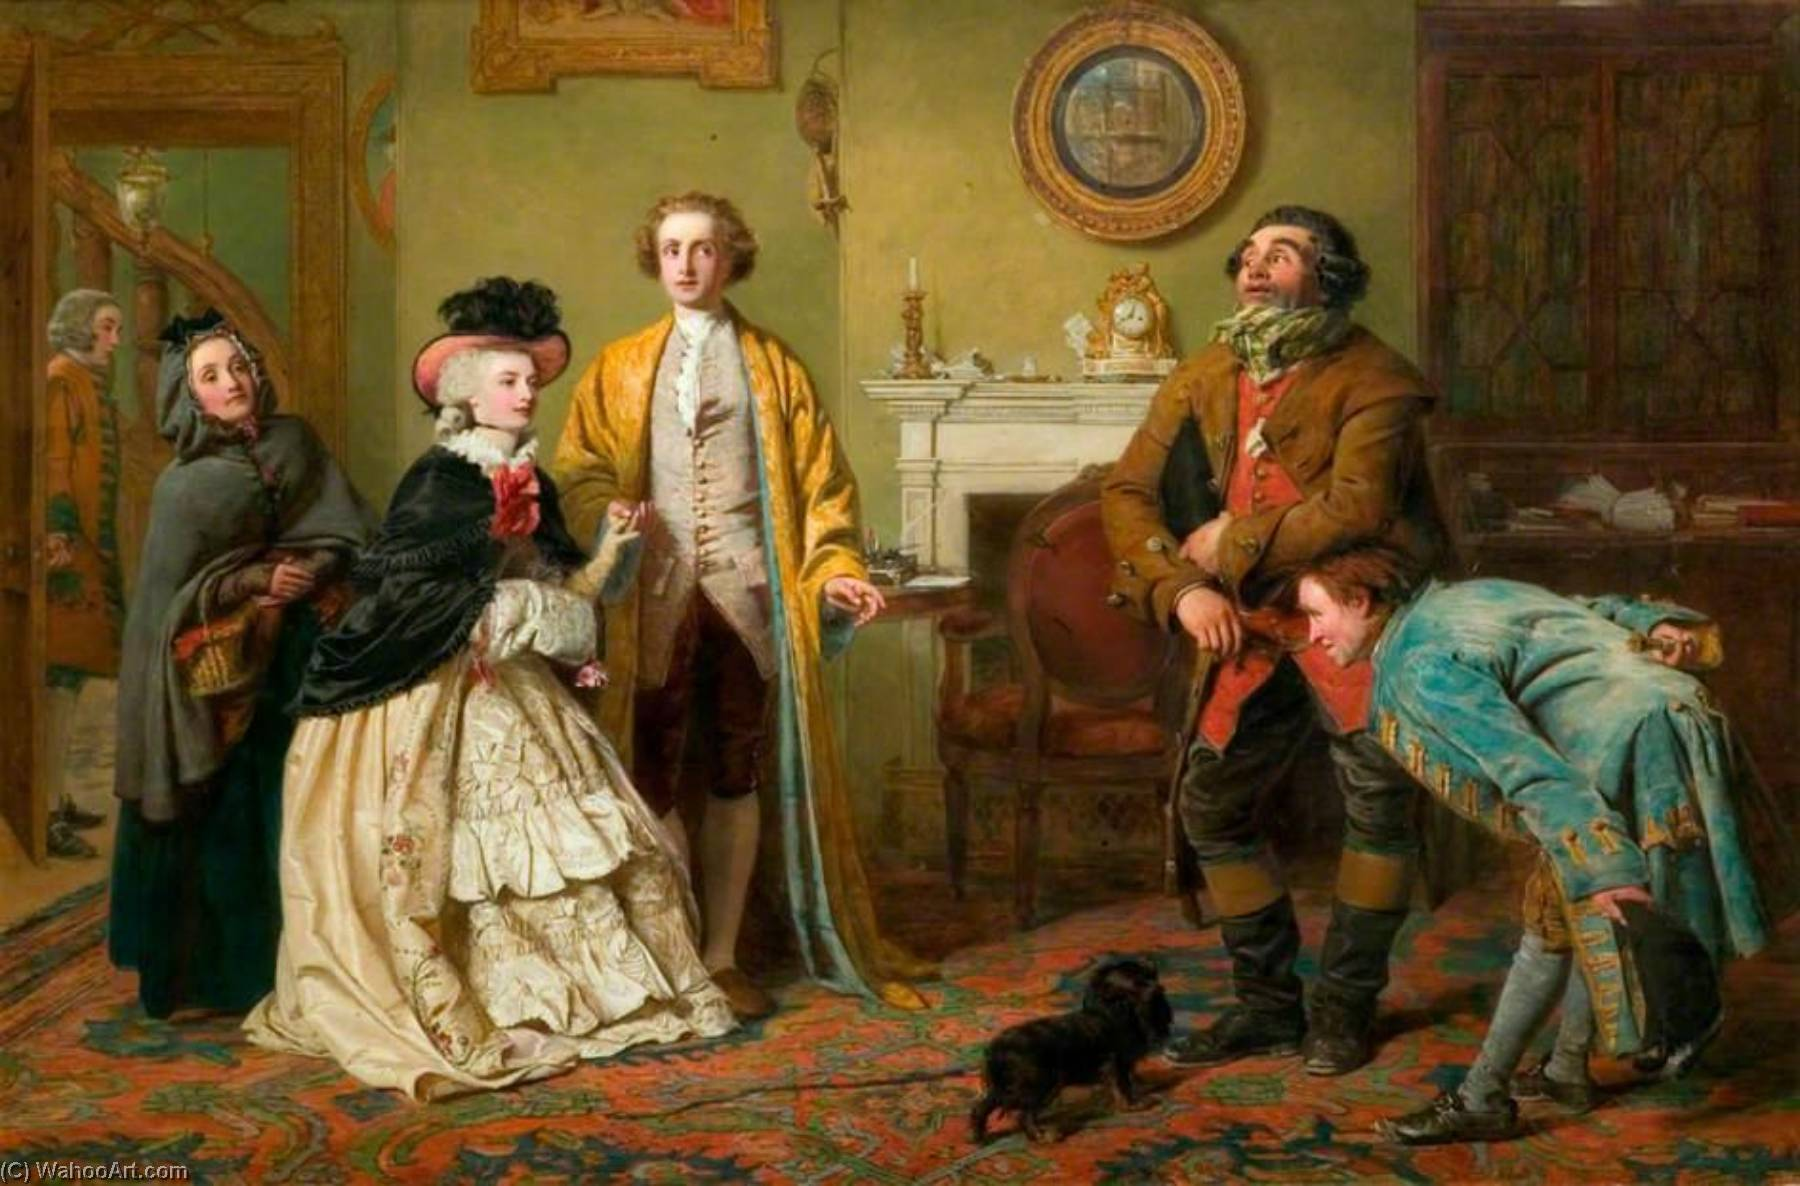 mr honeywood Introduce gli ufficiali giudiziari perdere Richland come i suoi amici ( conosciuto anche come rom oliver Goldsmith`s `The Bene Di natura Man` , atto iii , Scena 1 ), 1850 di William Powell Frith (1819-1909, United Kingdom) | Stampe D'arte Su Tela | WahooArt.com